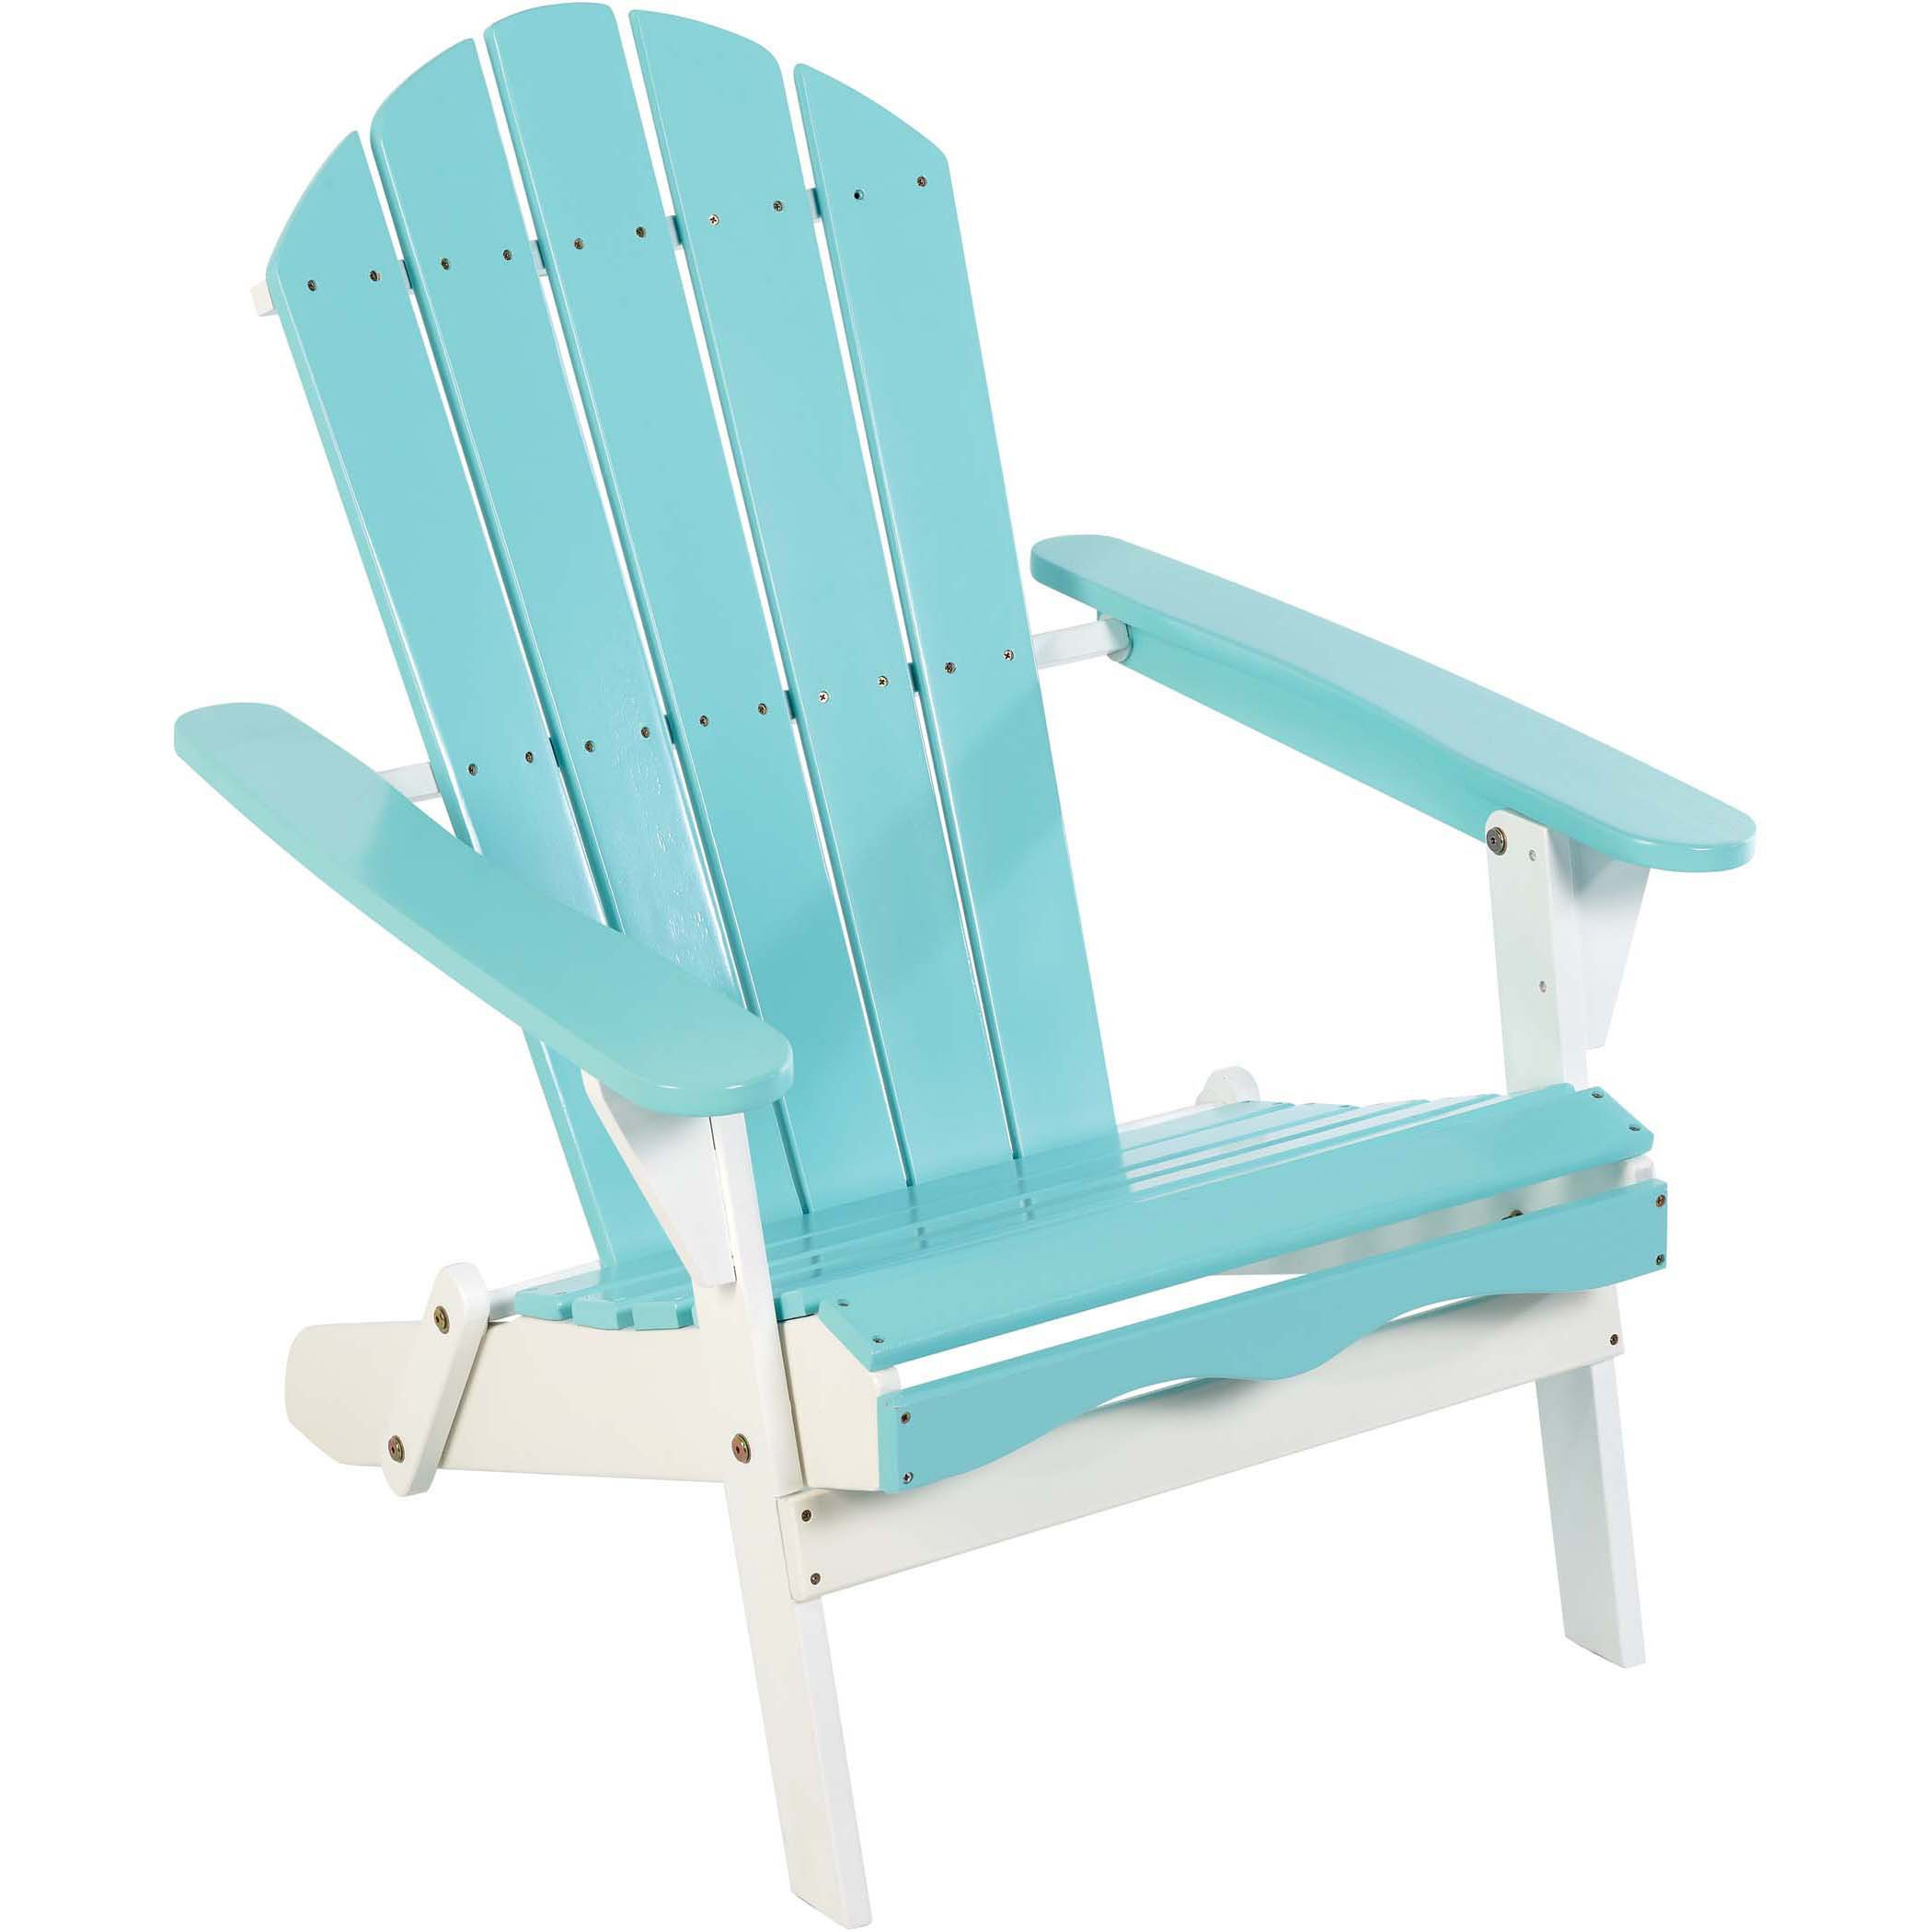 Outdoor Solutions Waterside Adirondack Chair Aqua Shop Chairs Seating At H E B